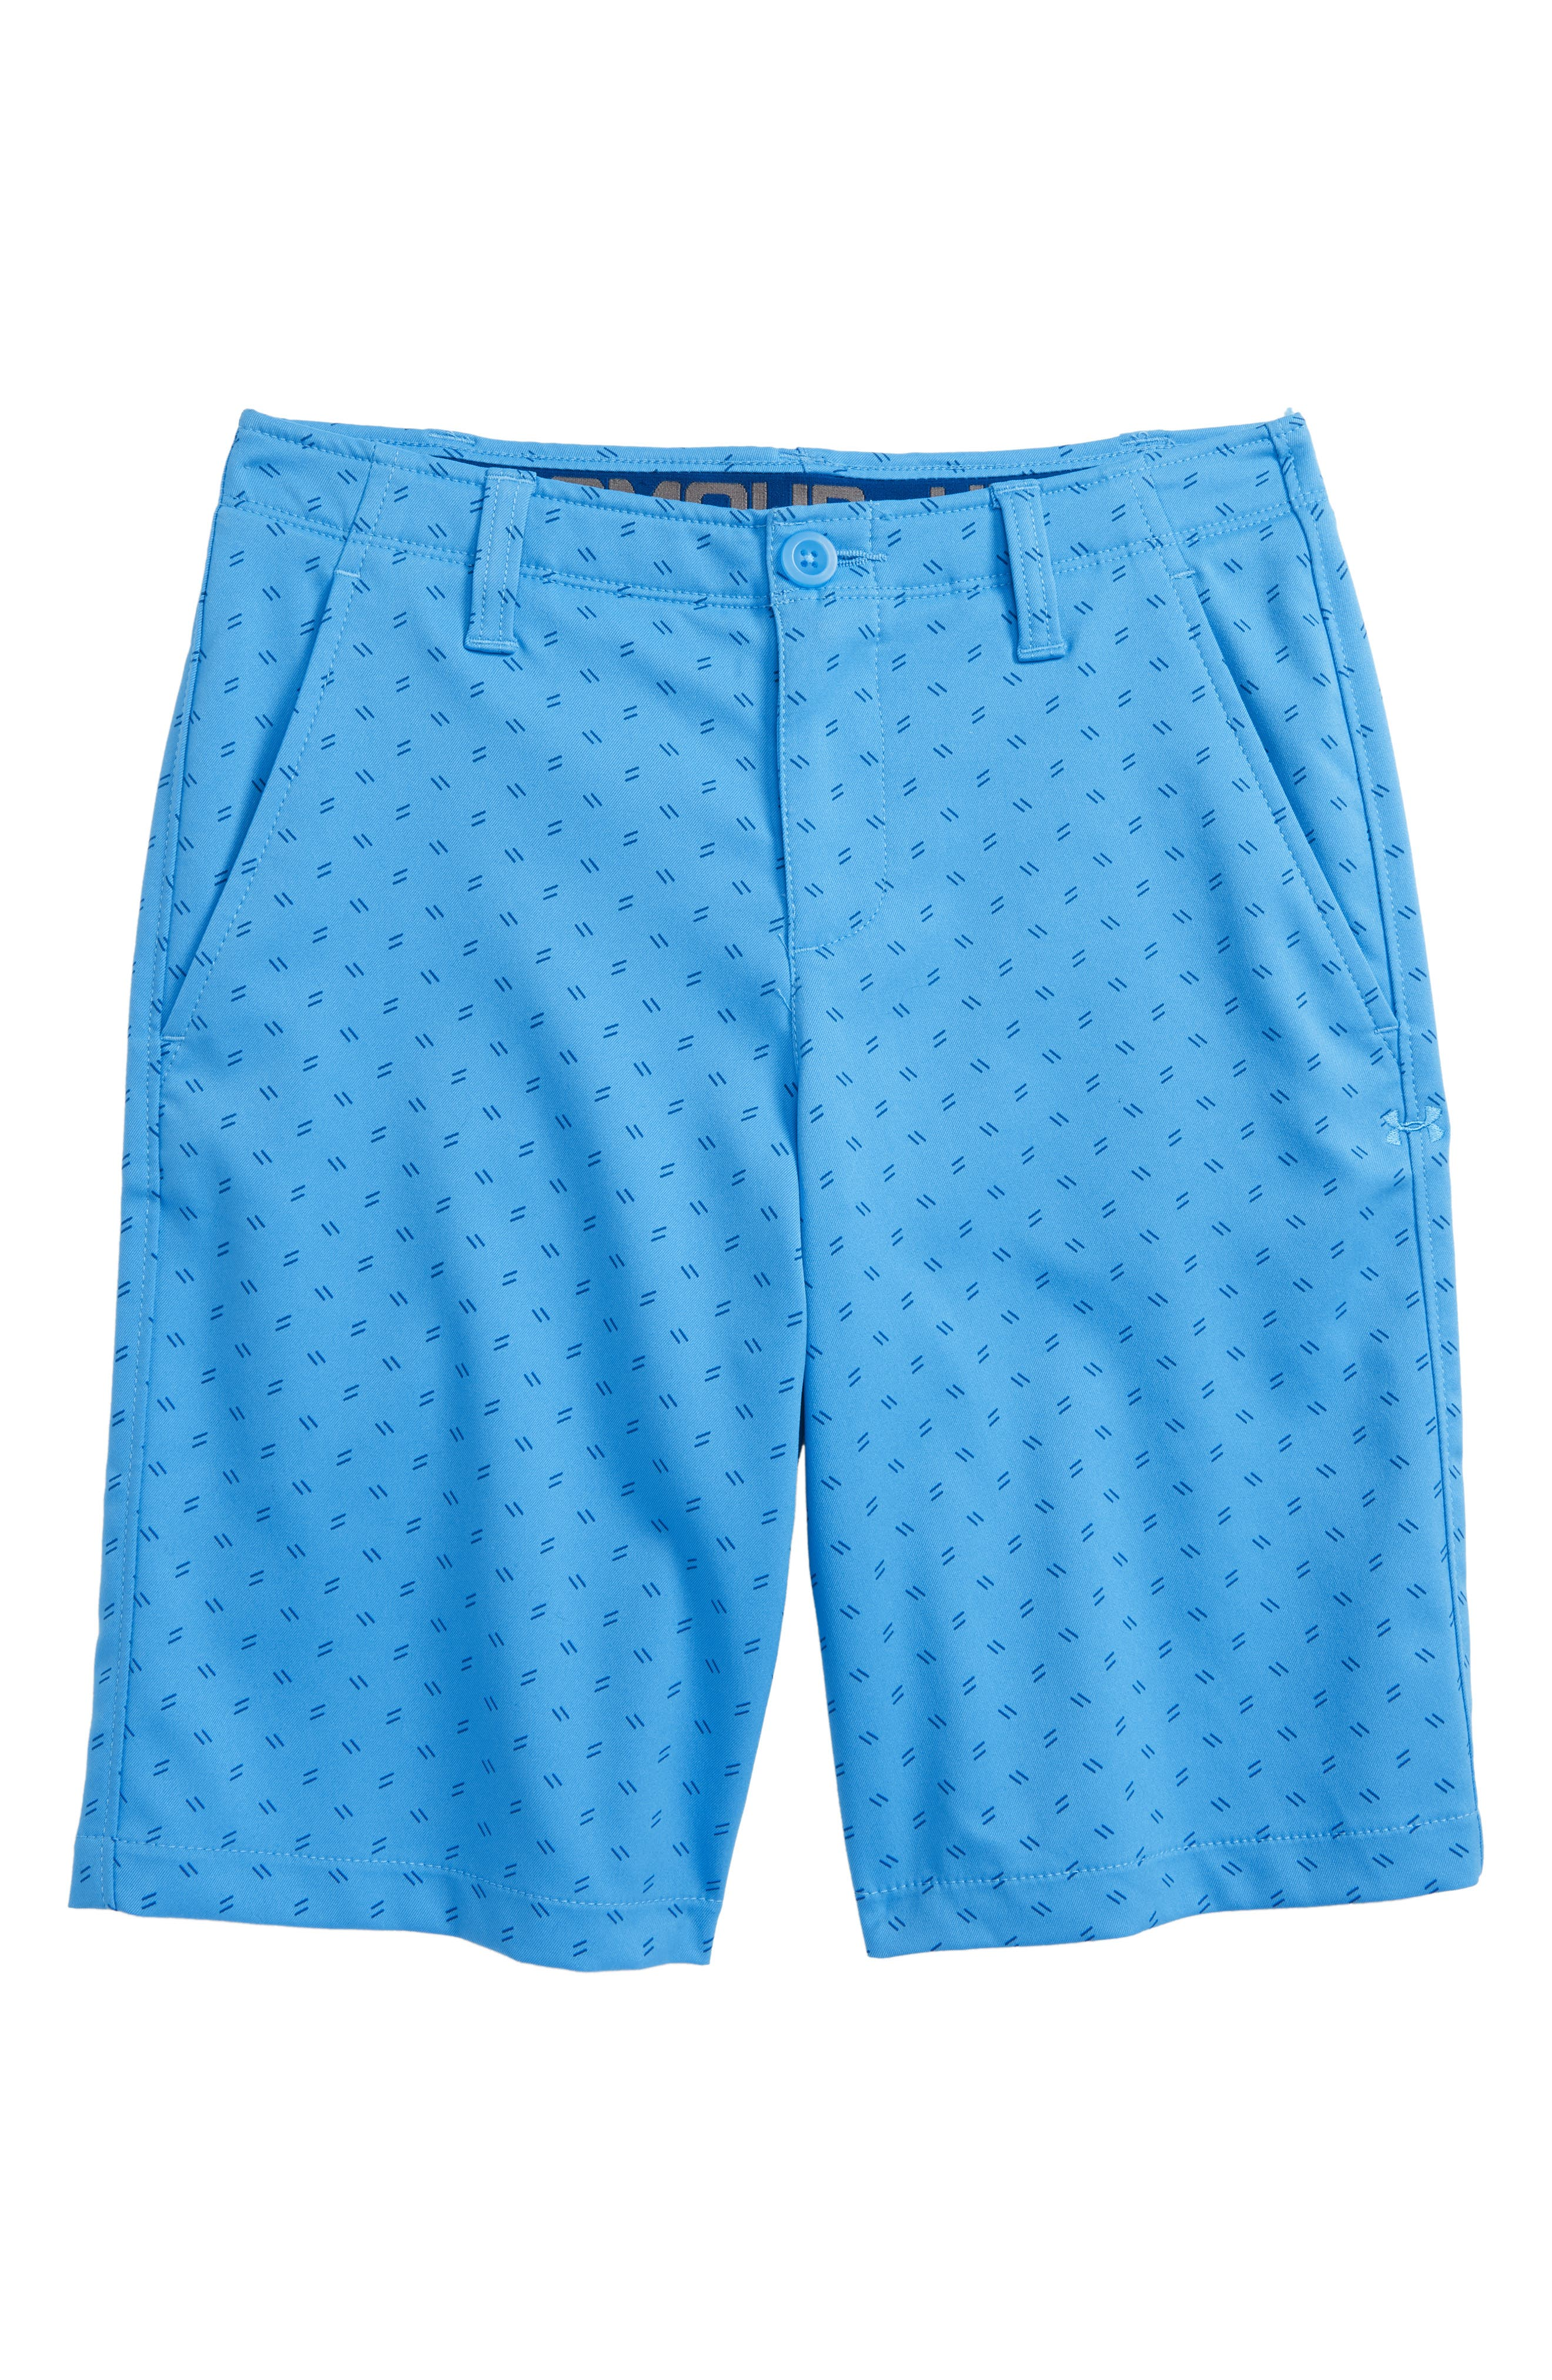 Match Play Golf Shorts,                         Main,                         color, Canoe Blue/ Moroccan Blue